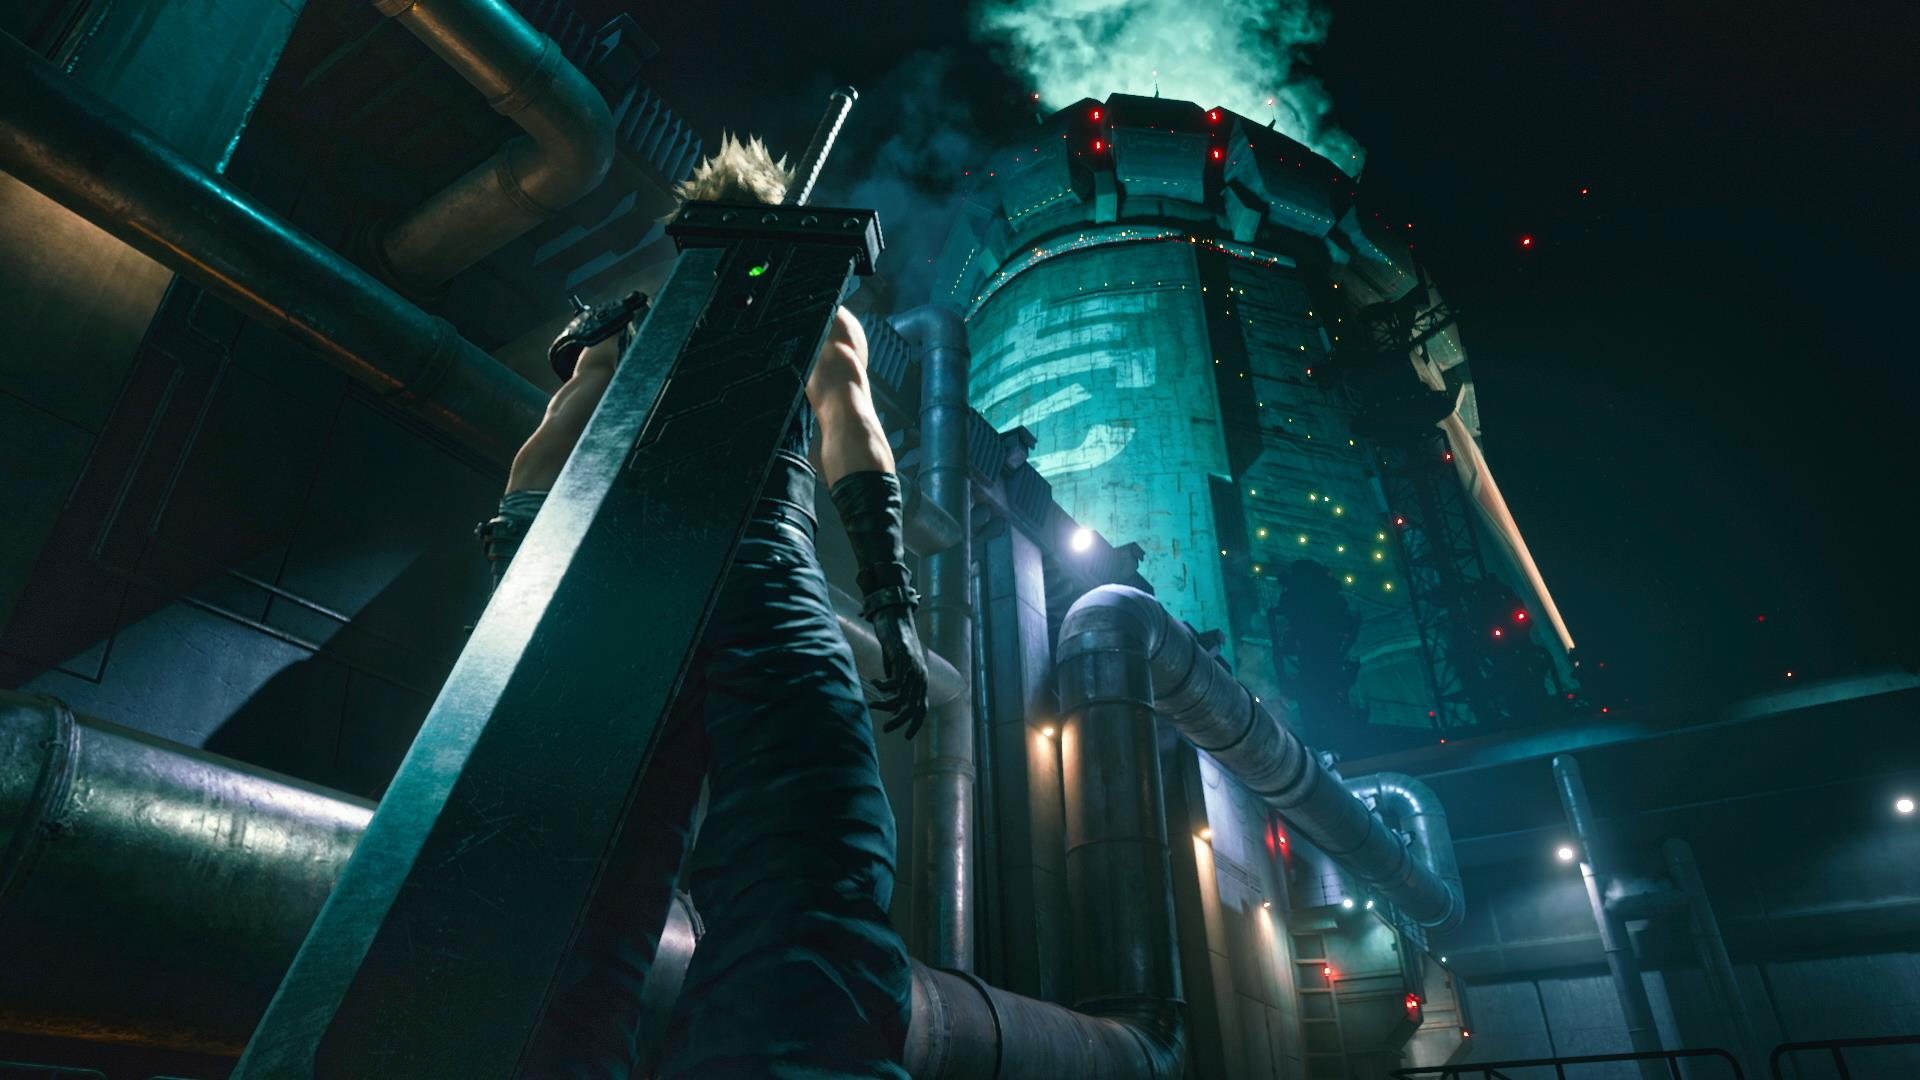 Blonde man with large sword looking up at a power reactor inside an industrial city at night